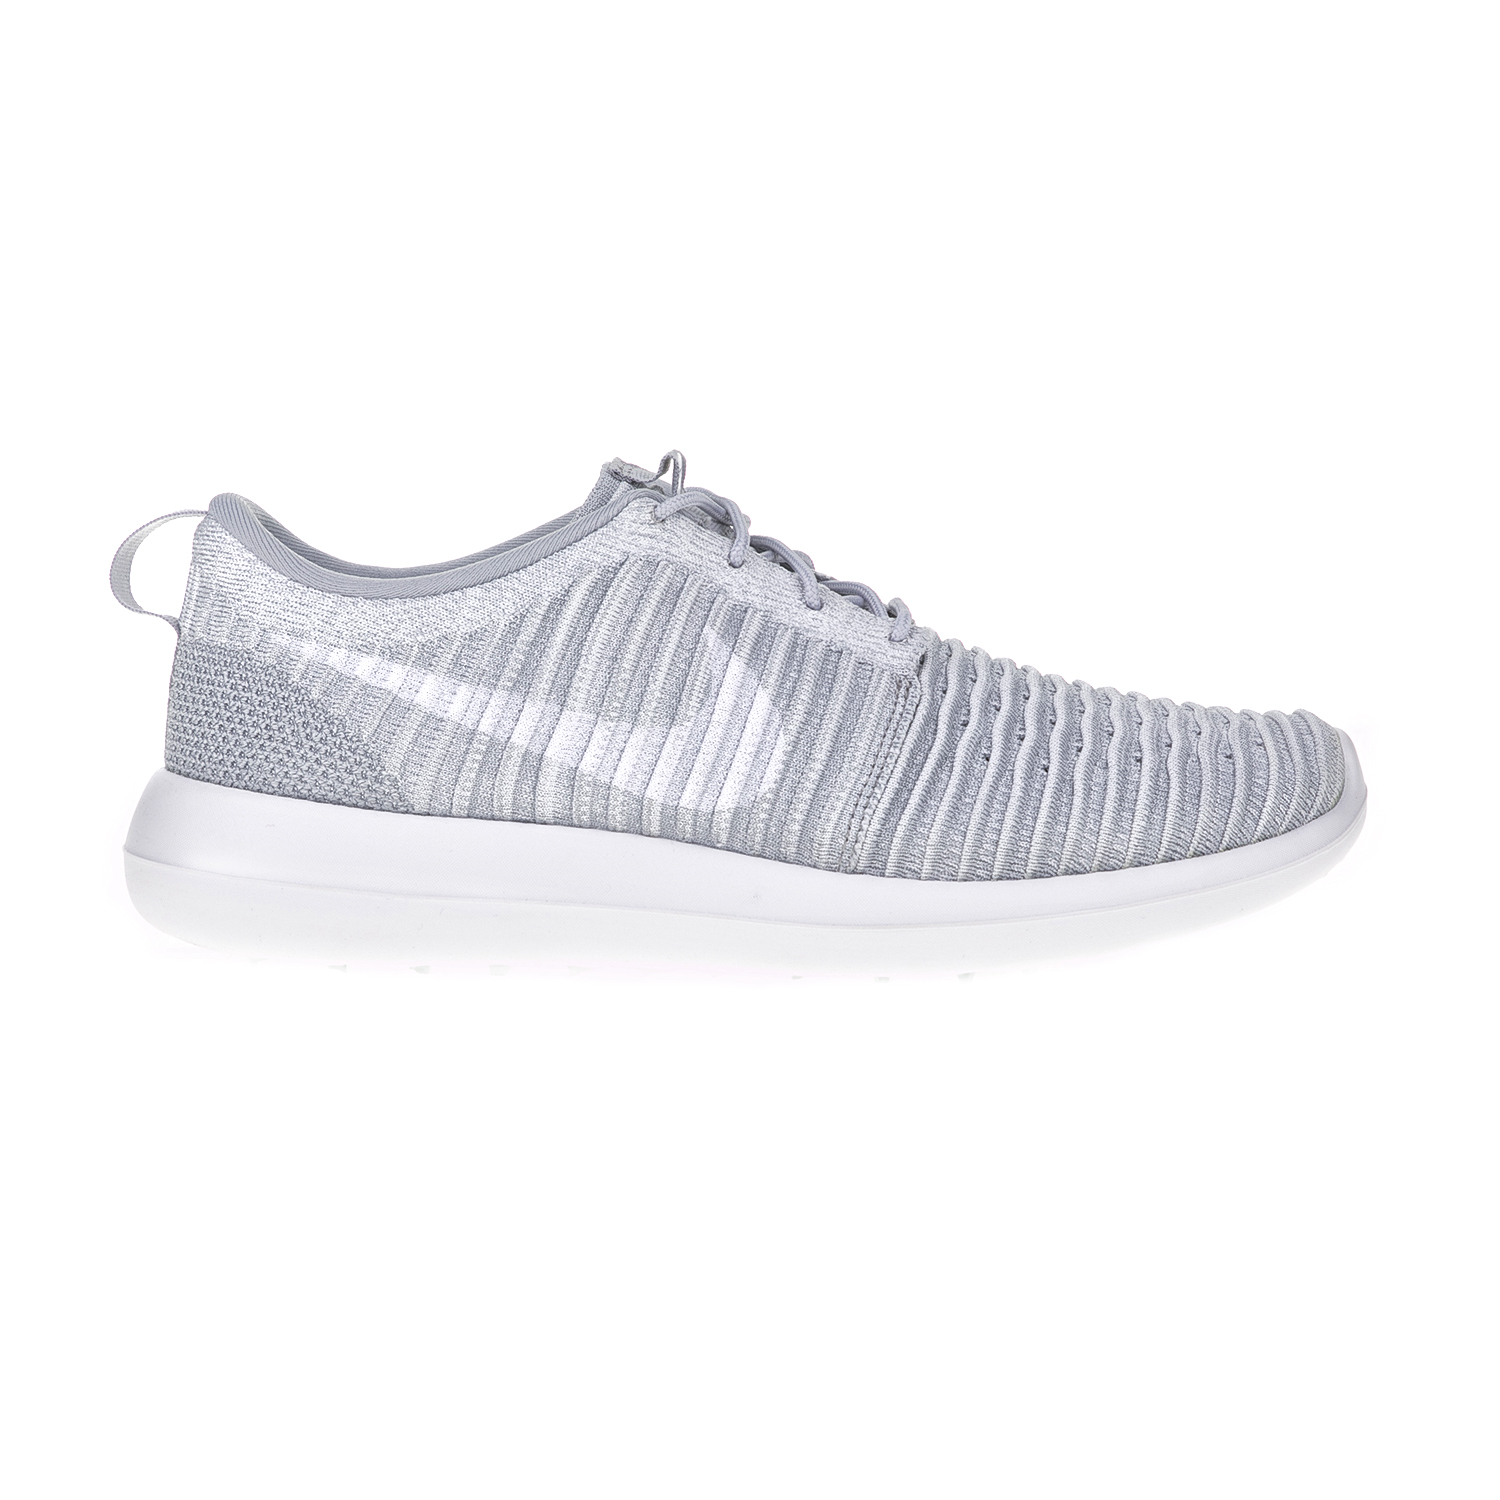 NIKE – Ανδρικά αθλητικά παπούτσια NIKE ROSHE TWO FLYKNIT γκρι-λευκά